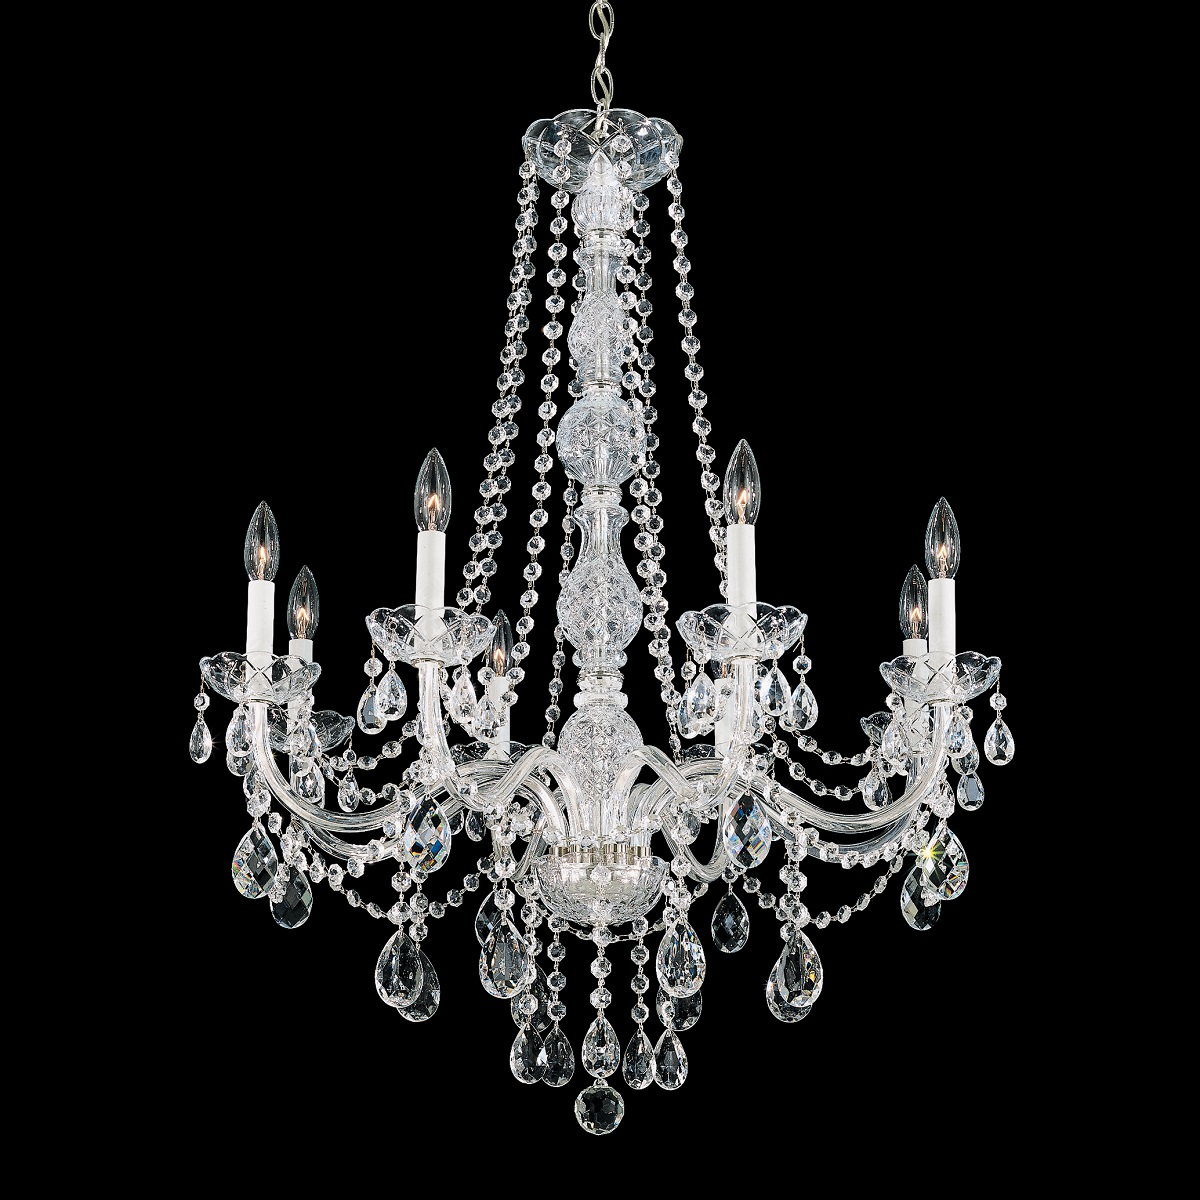 Schonbek Contemporary Crystal Chandeliers Brooklyn,New York  by Accentuations Brand